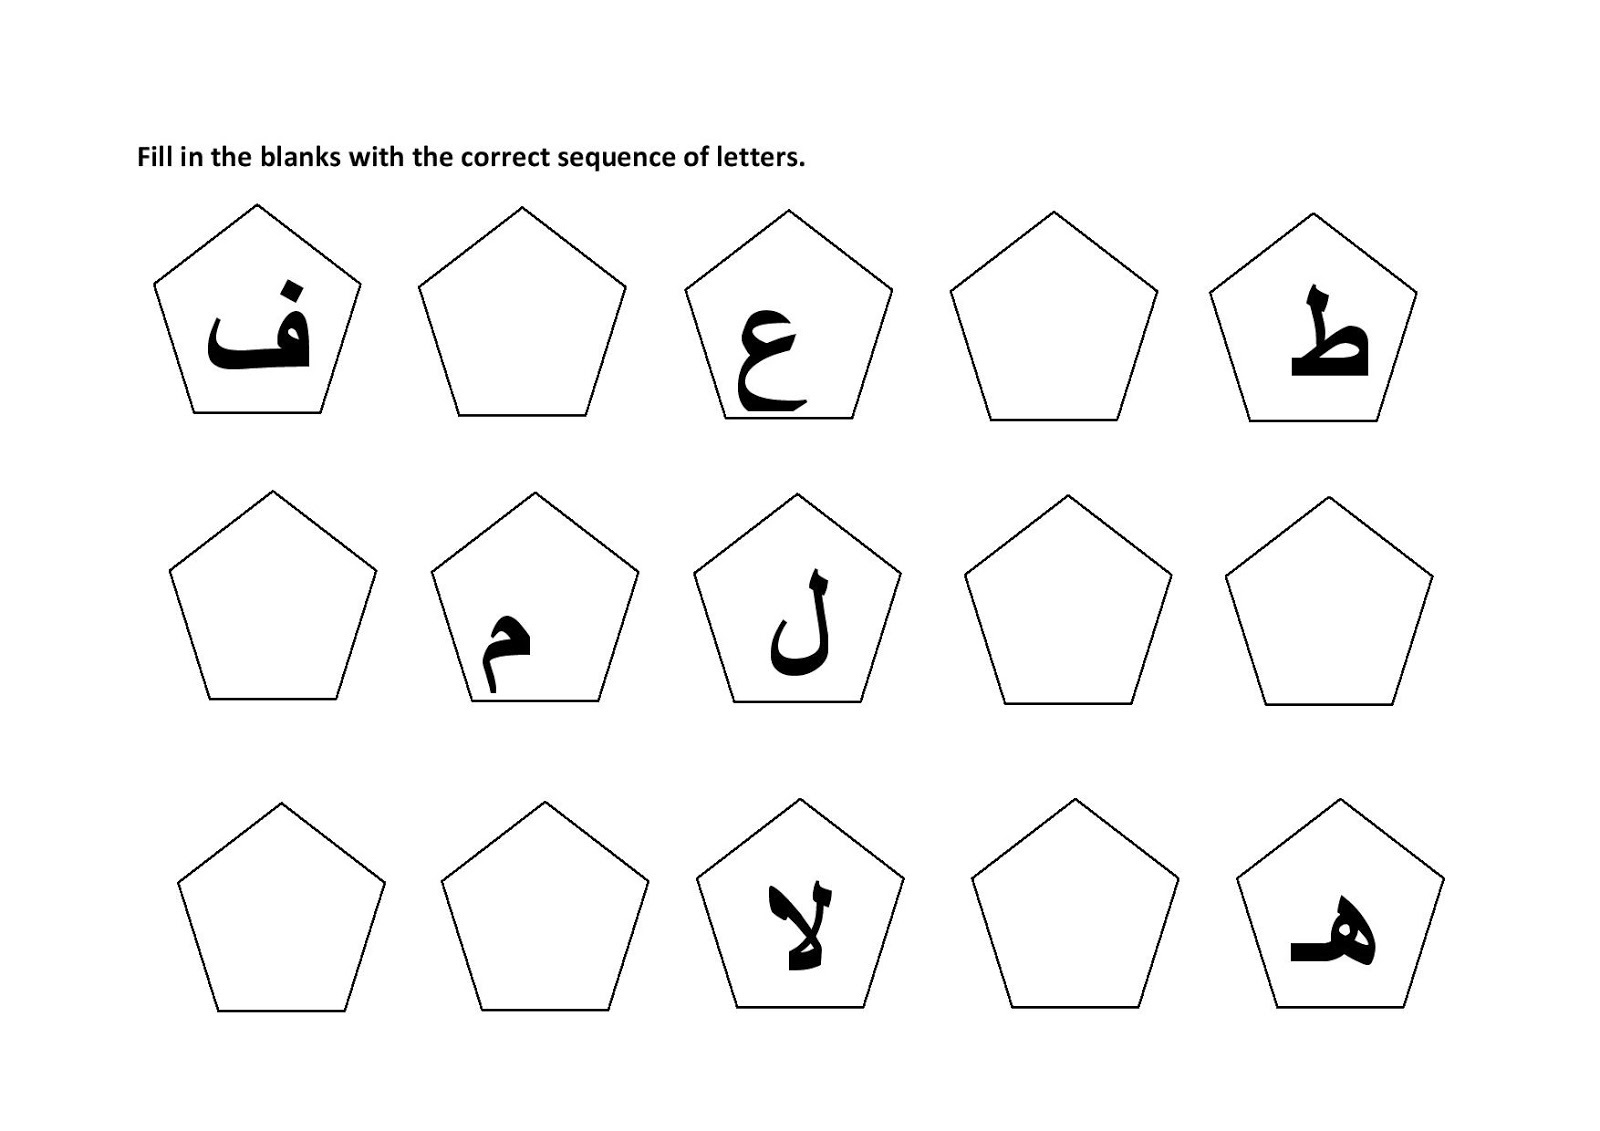 Worksheets Arabic Alphabet Worksheets arabic alphabet worksheets activity shelter simple